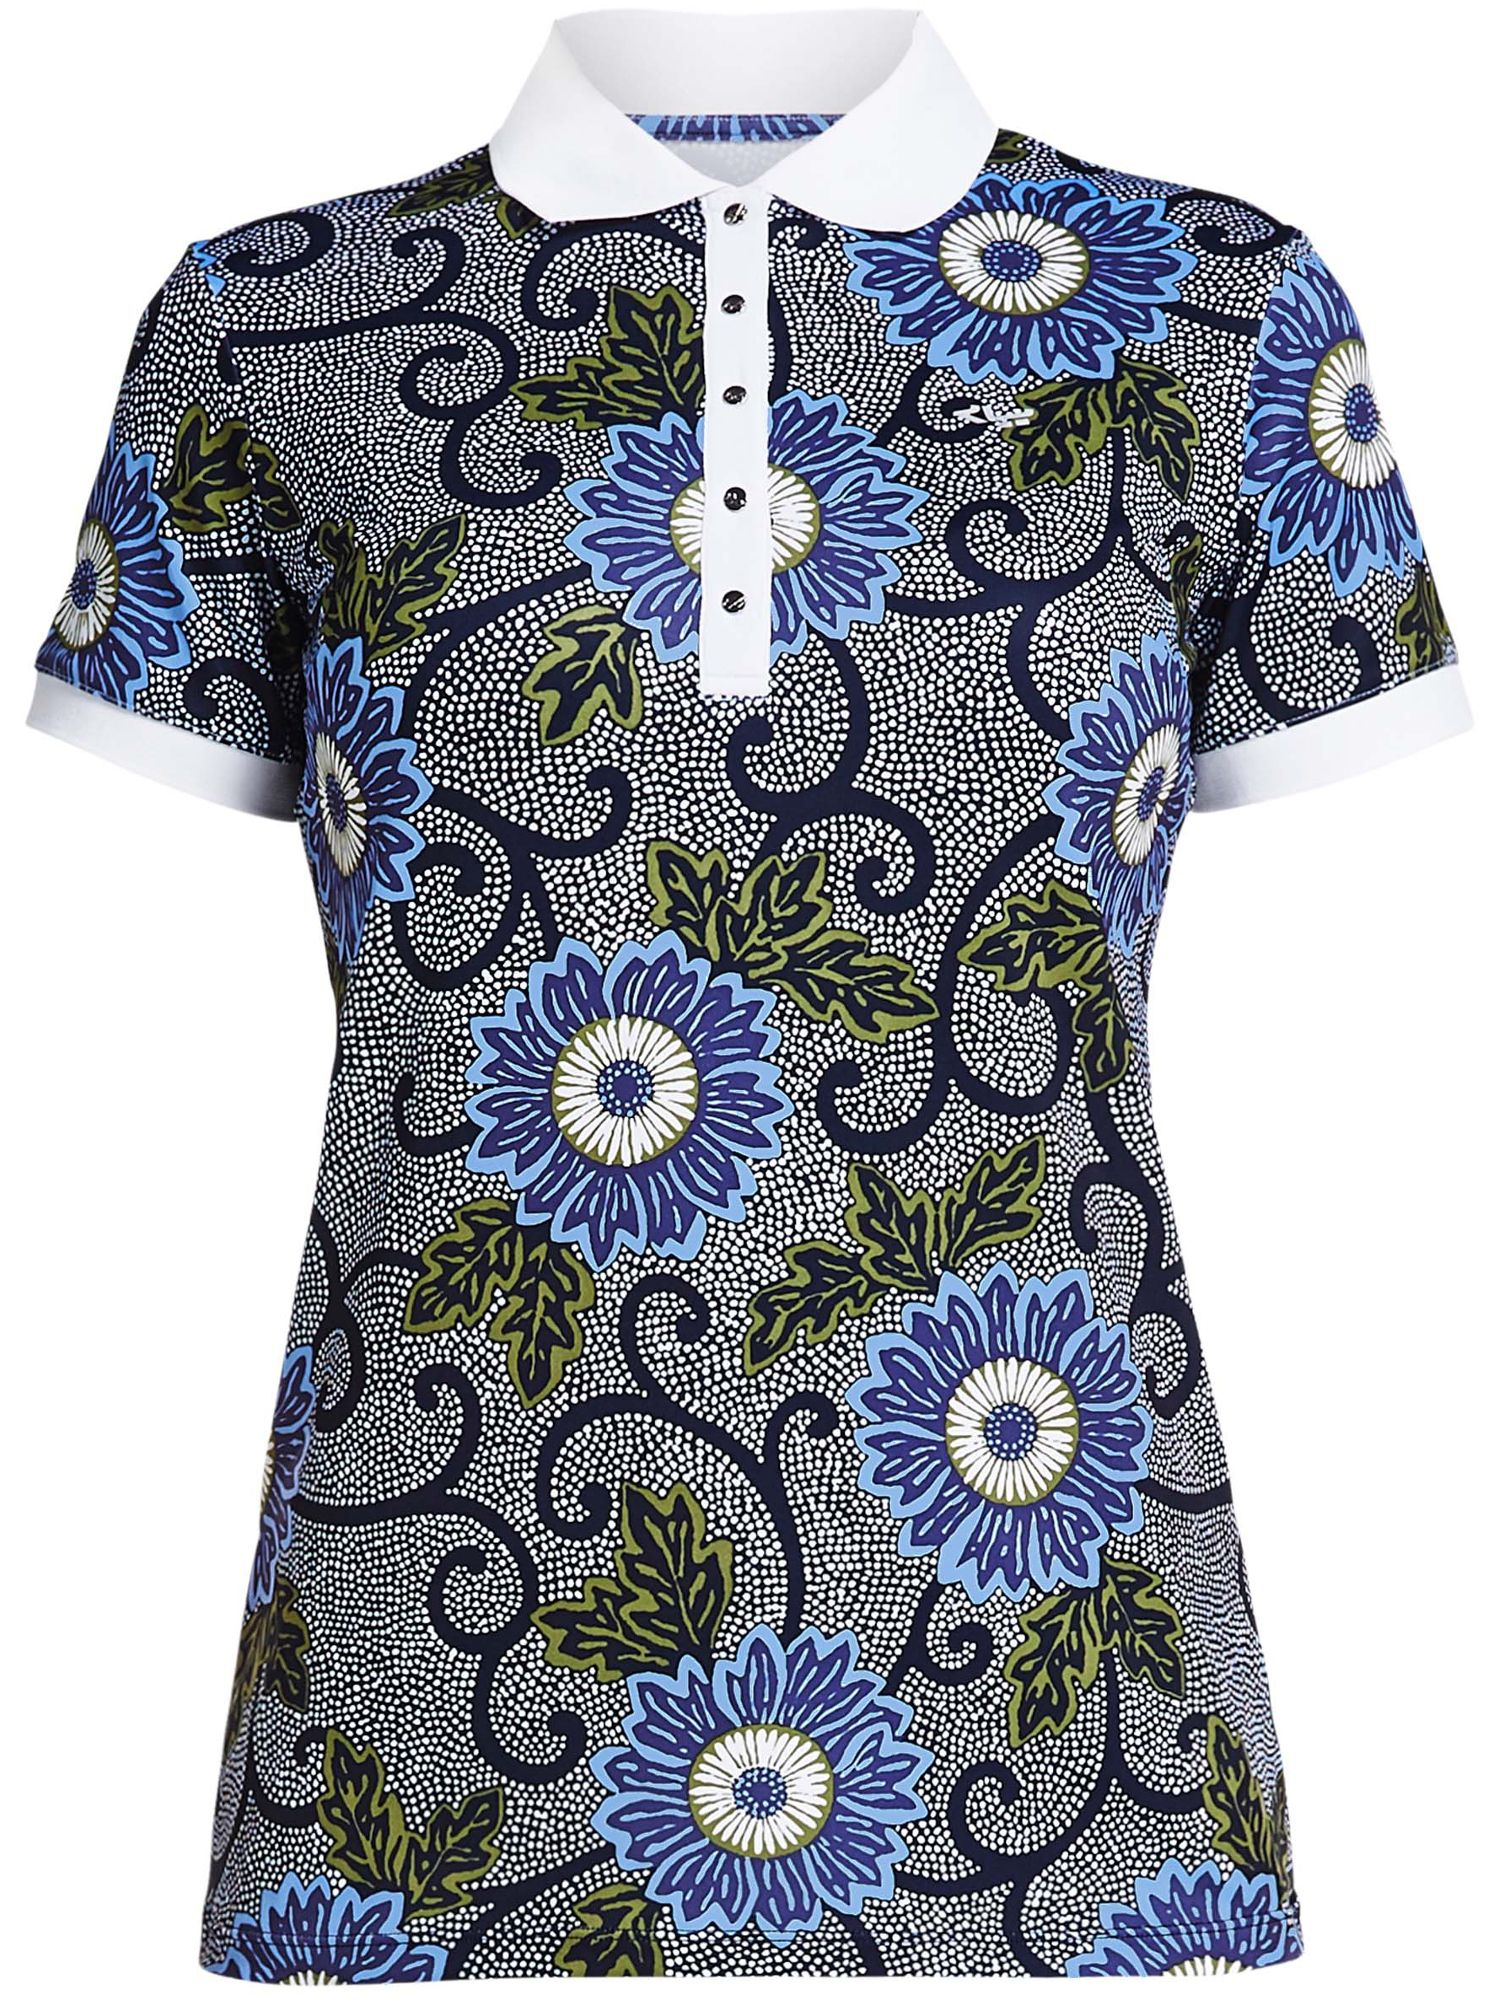 Rohnisch Aop Short Sleeved Polo, Blue